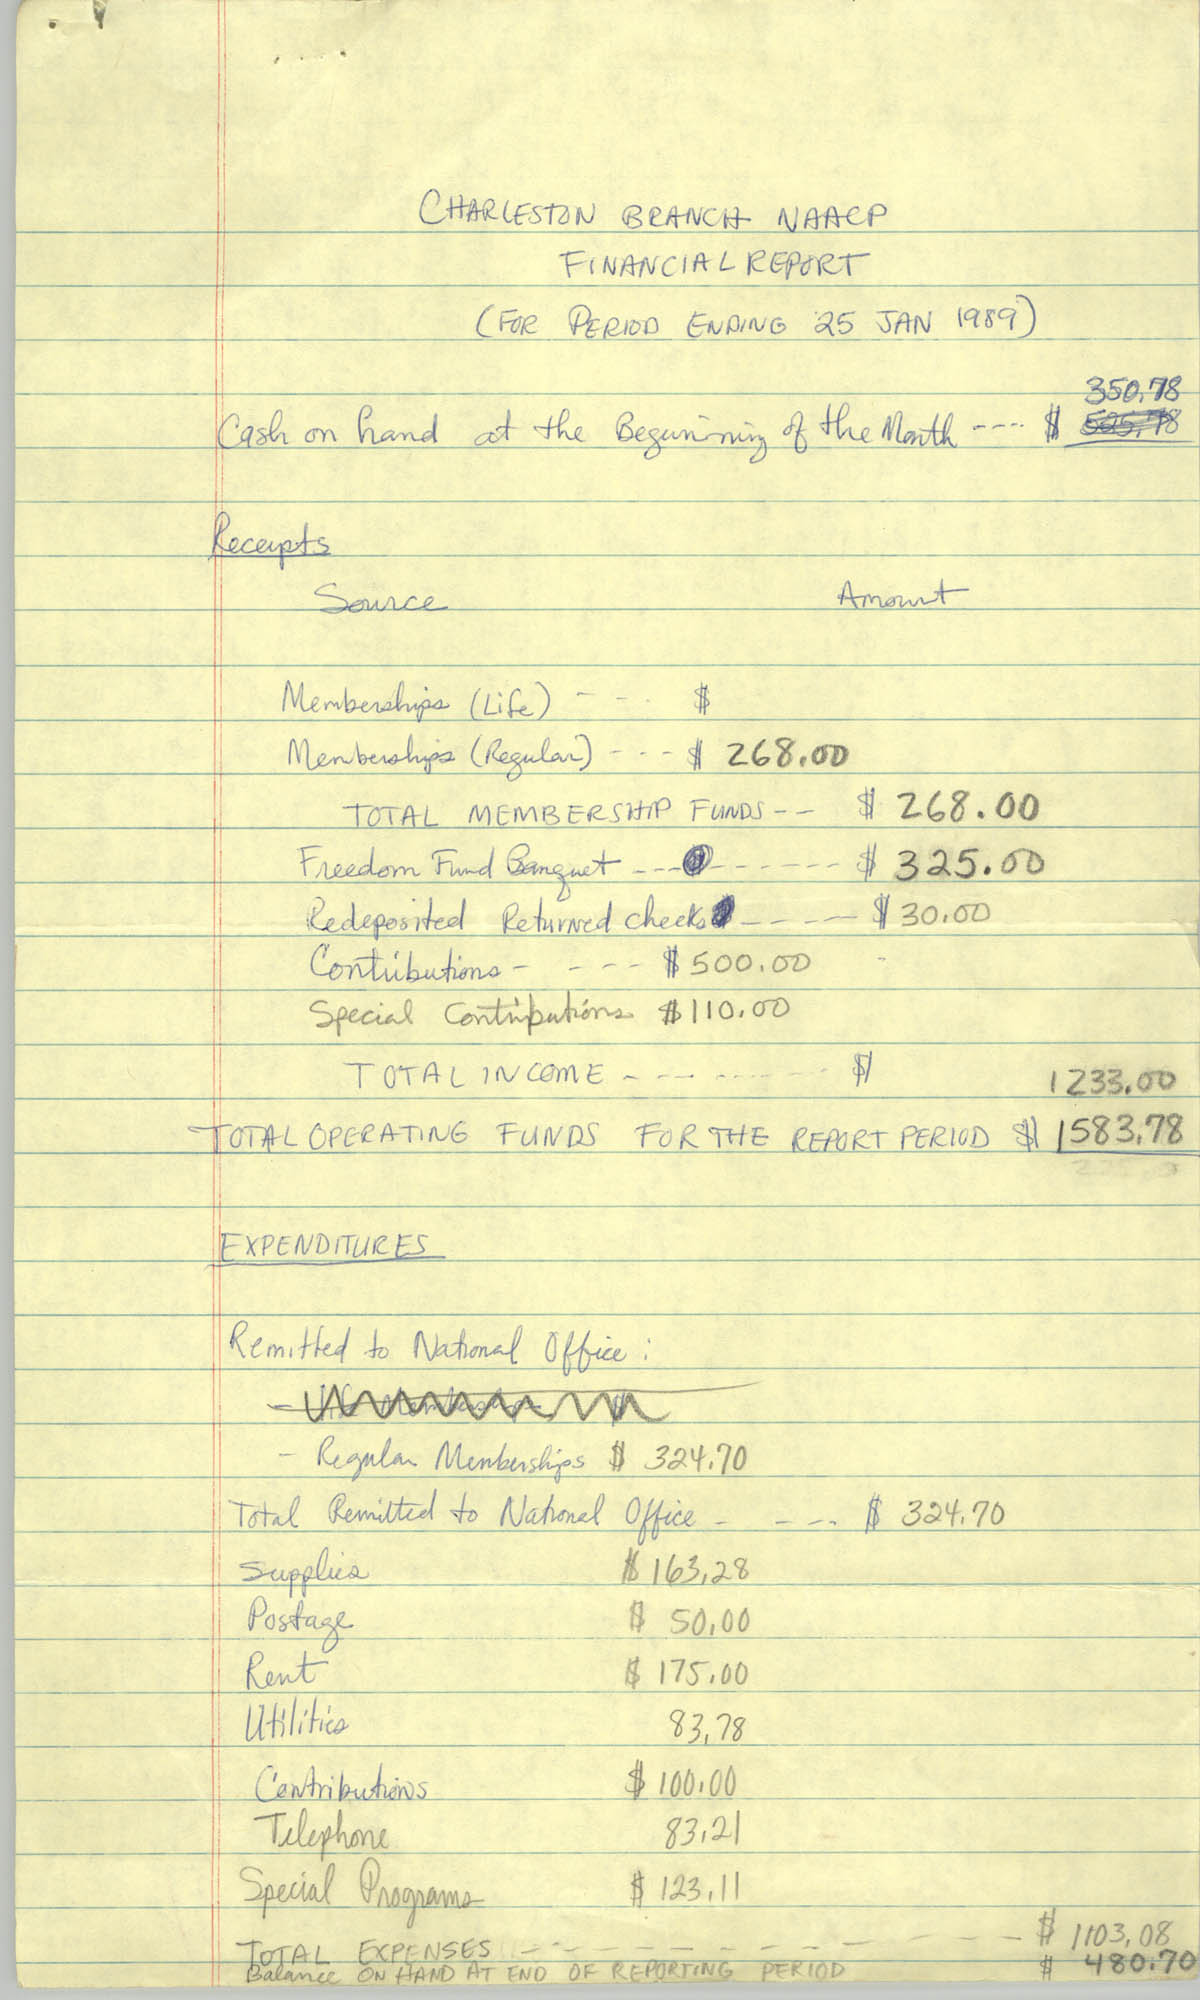 Charleston Branch of the NAACP Financial Report, January 1989